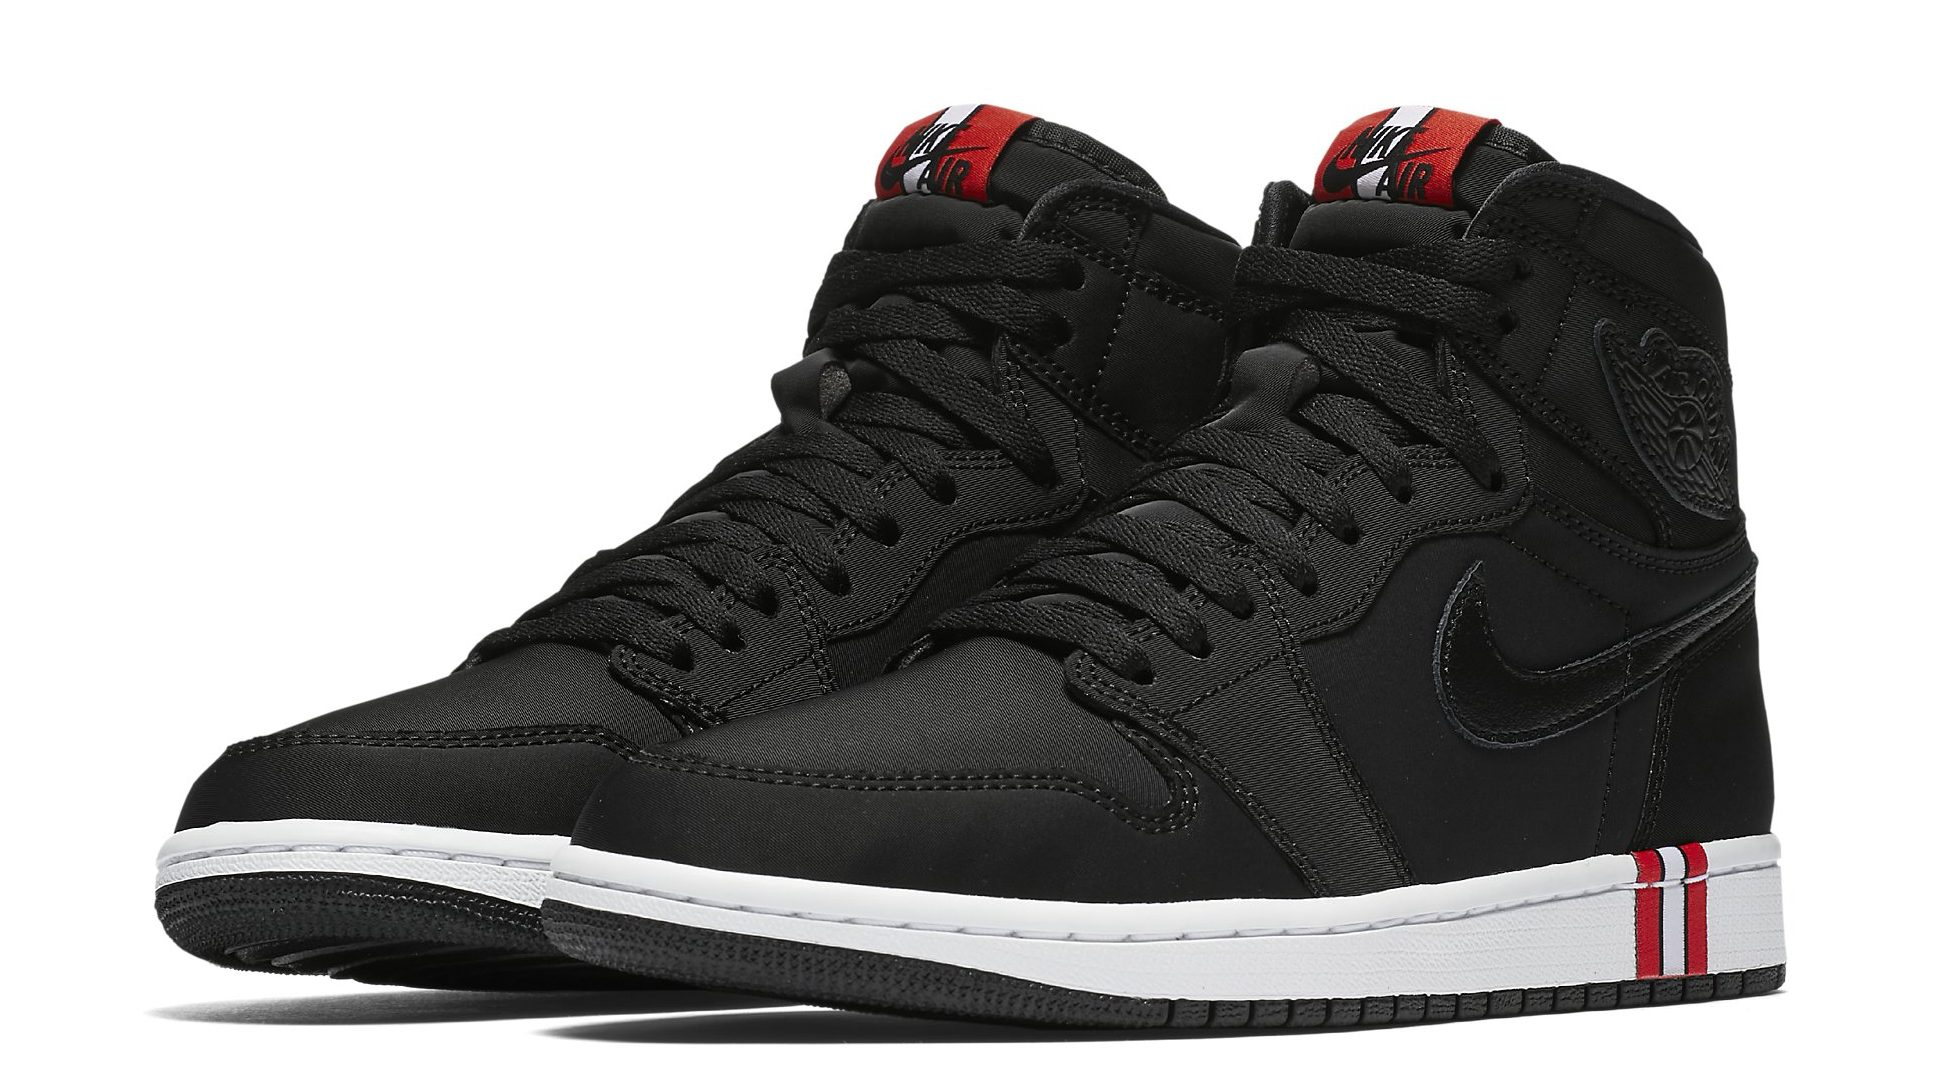 proteccion intercambiar exterior  Paris Saint-Germain Soccer Club x Air Jordan 1: How to Purchase – Footwear  News